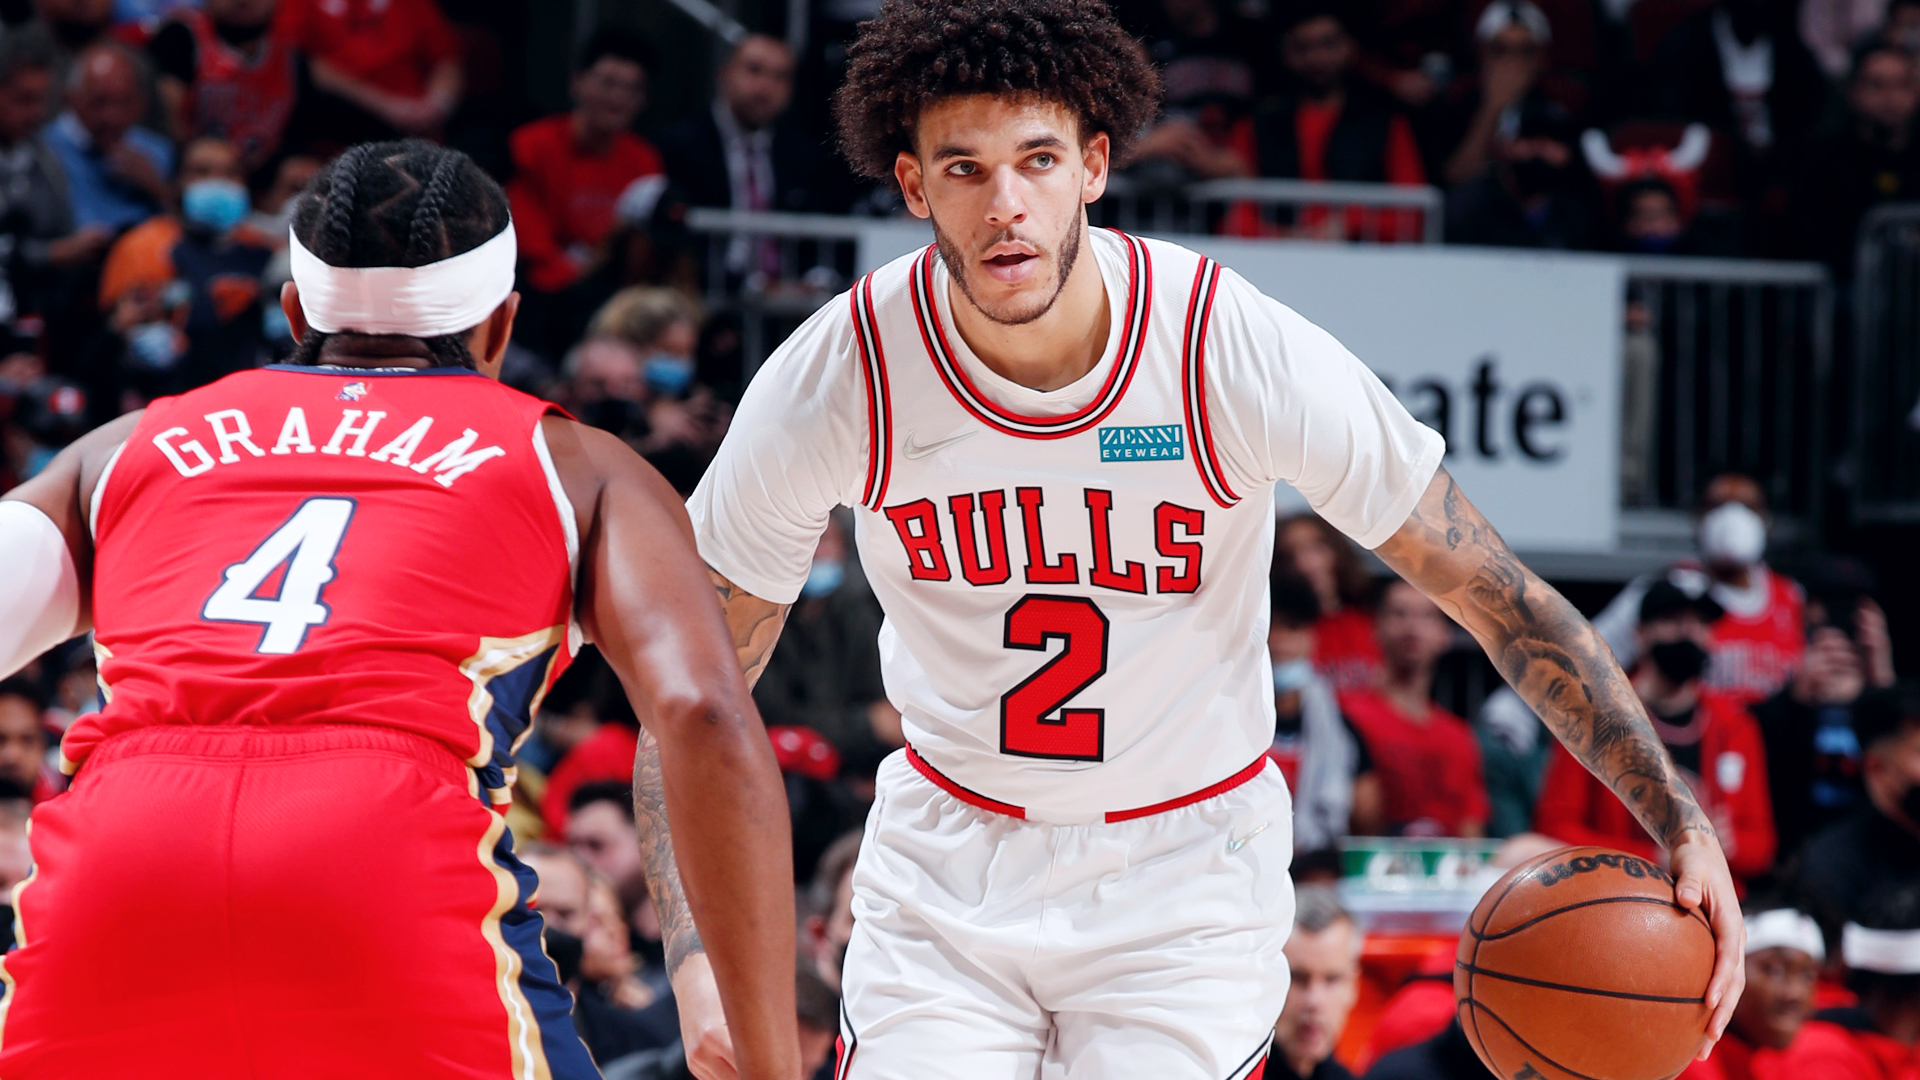 Dawn of a new era? New-look Bulls fire on all cylinders in home opener